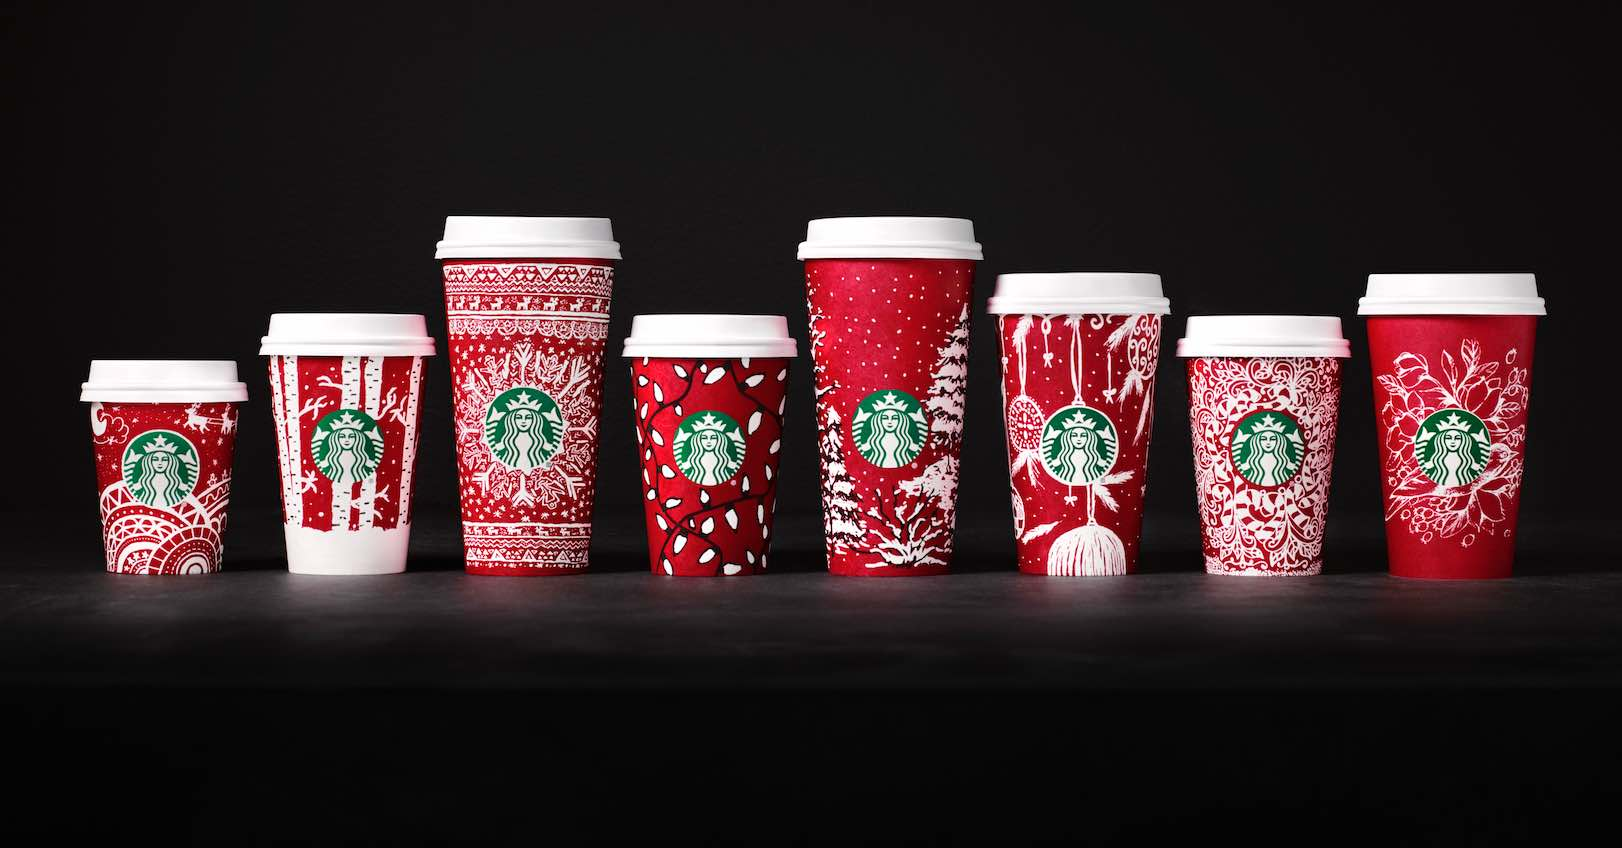 starbucks-launched-first-ever-customers-designed-festive-cups-aspirantsg